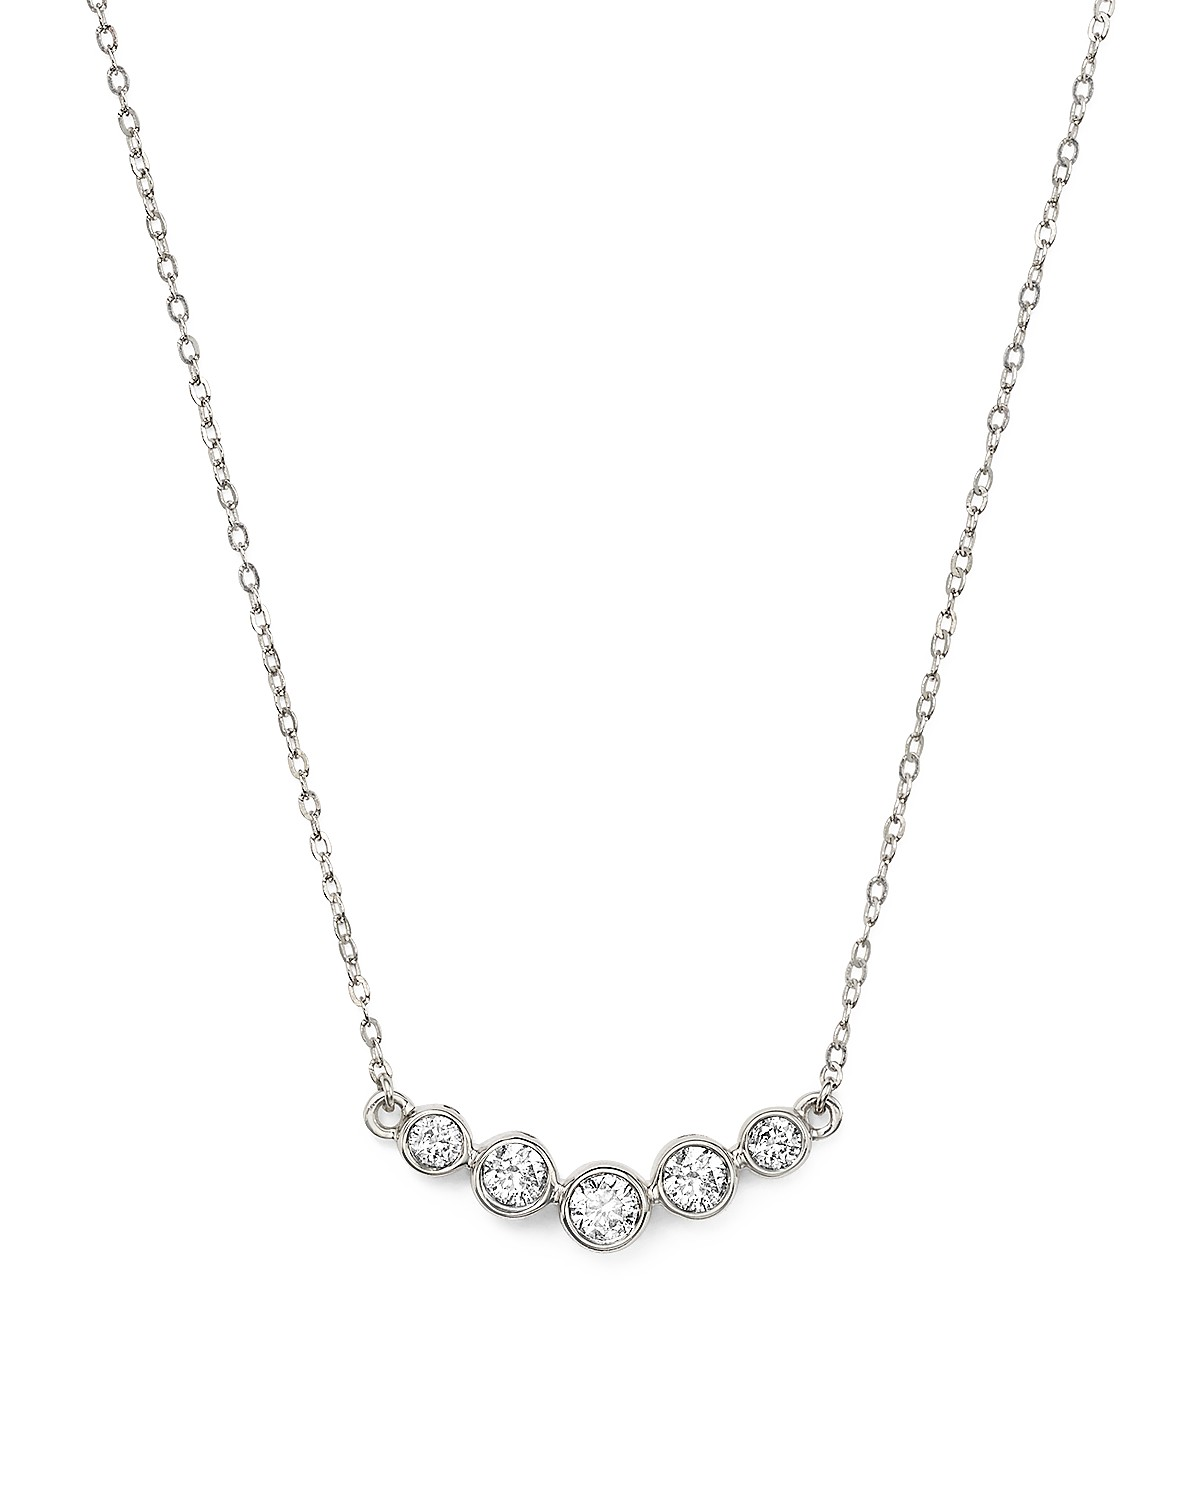 nl gold yellow round yg white diamond ct necklace with graduated jewelry in eternity